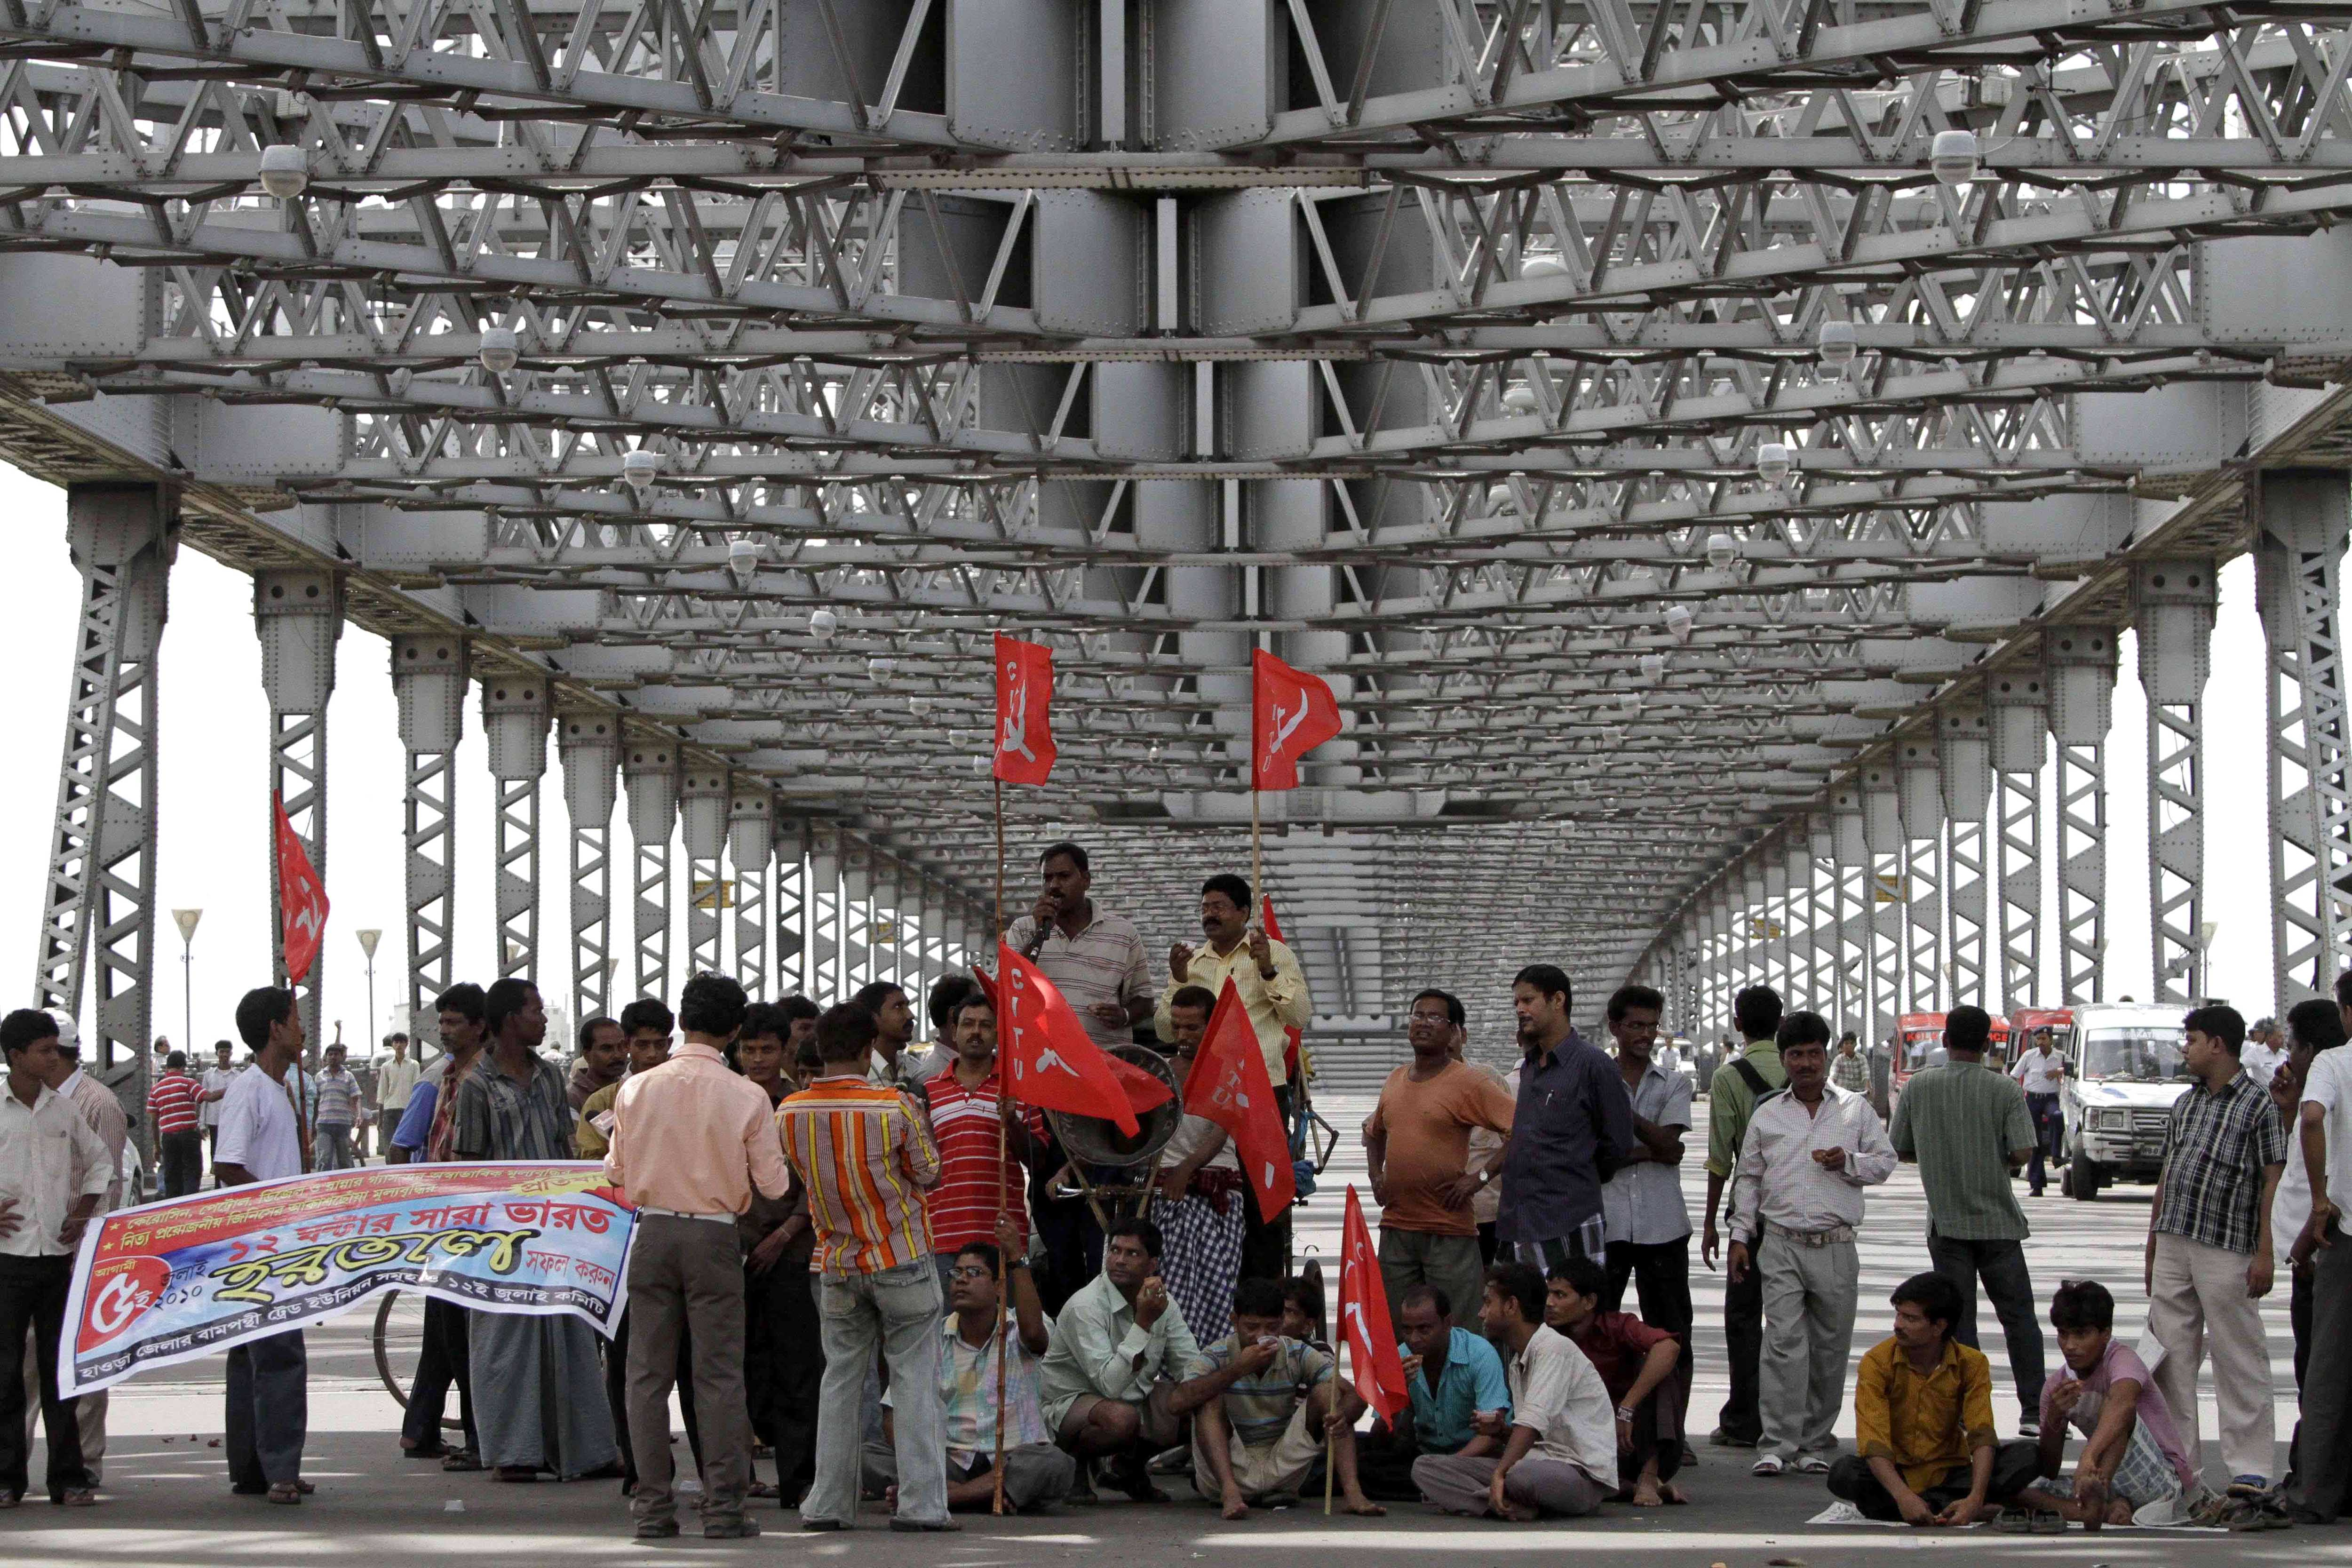 Communist Party of India (Marxist) supporters block traffic on Howrah Bridge over River Ganges during a general strike in Calcutta, India on July 5.